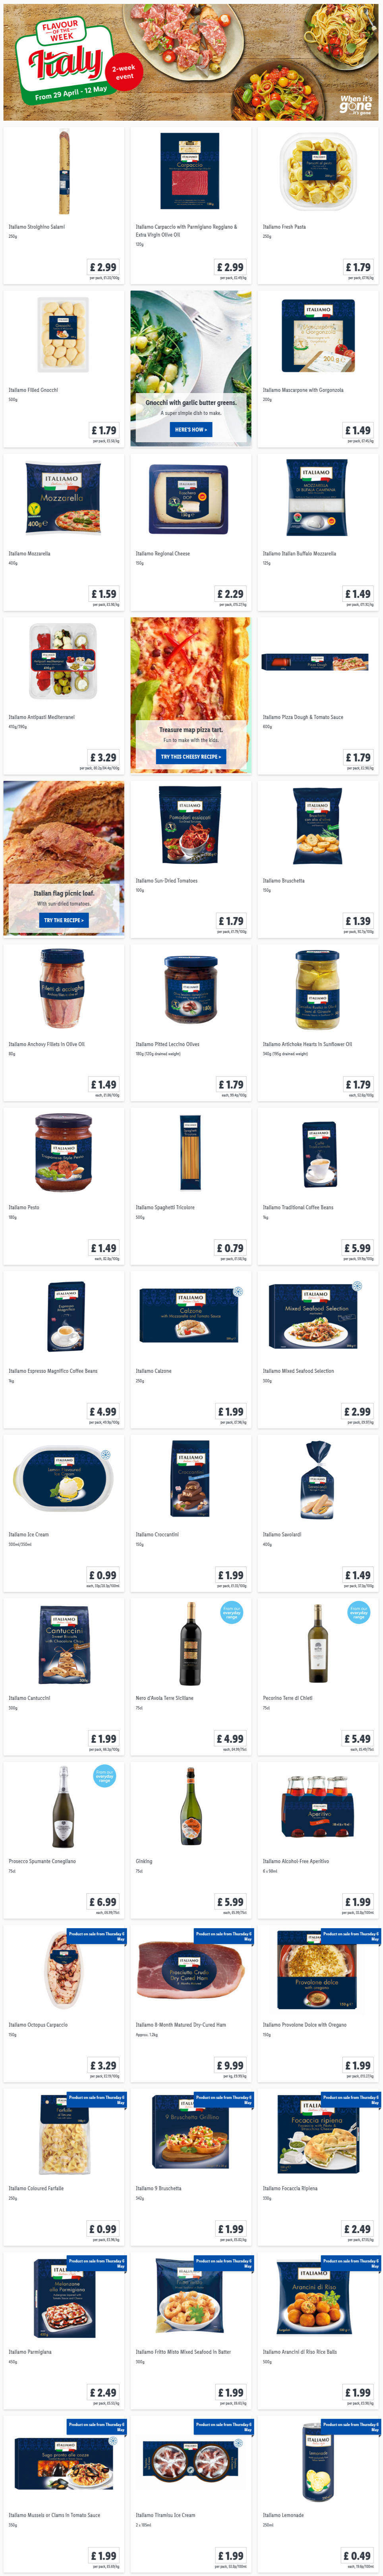 LIDL Offers this Thursday From 29th April 2021 LIDL Flavour of The Week Italian